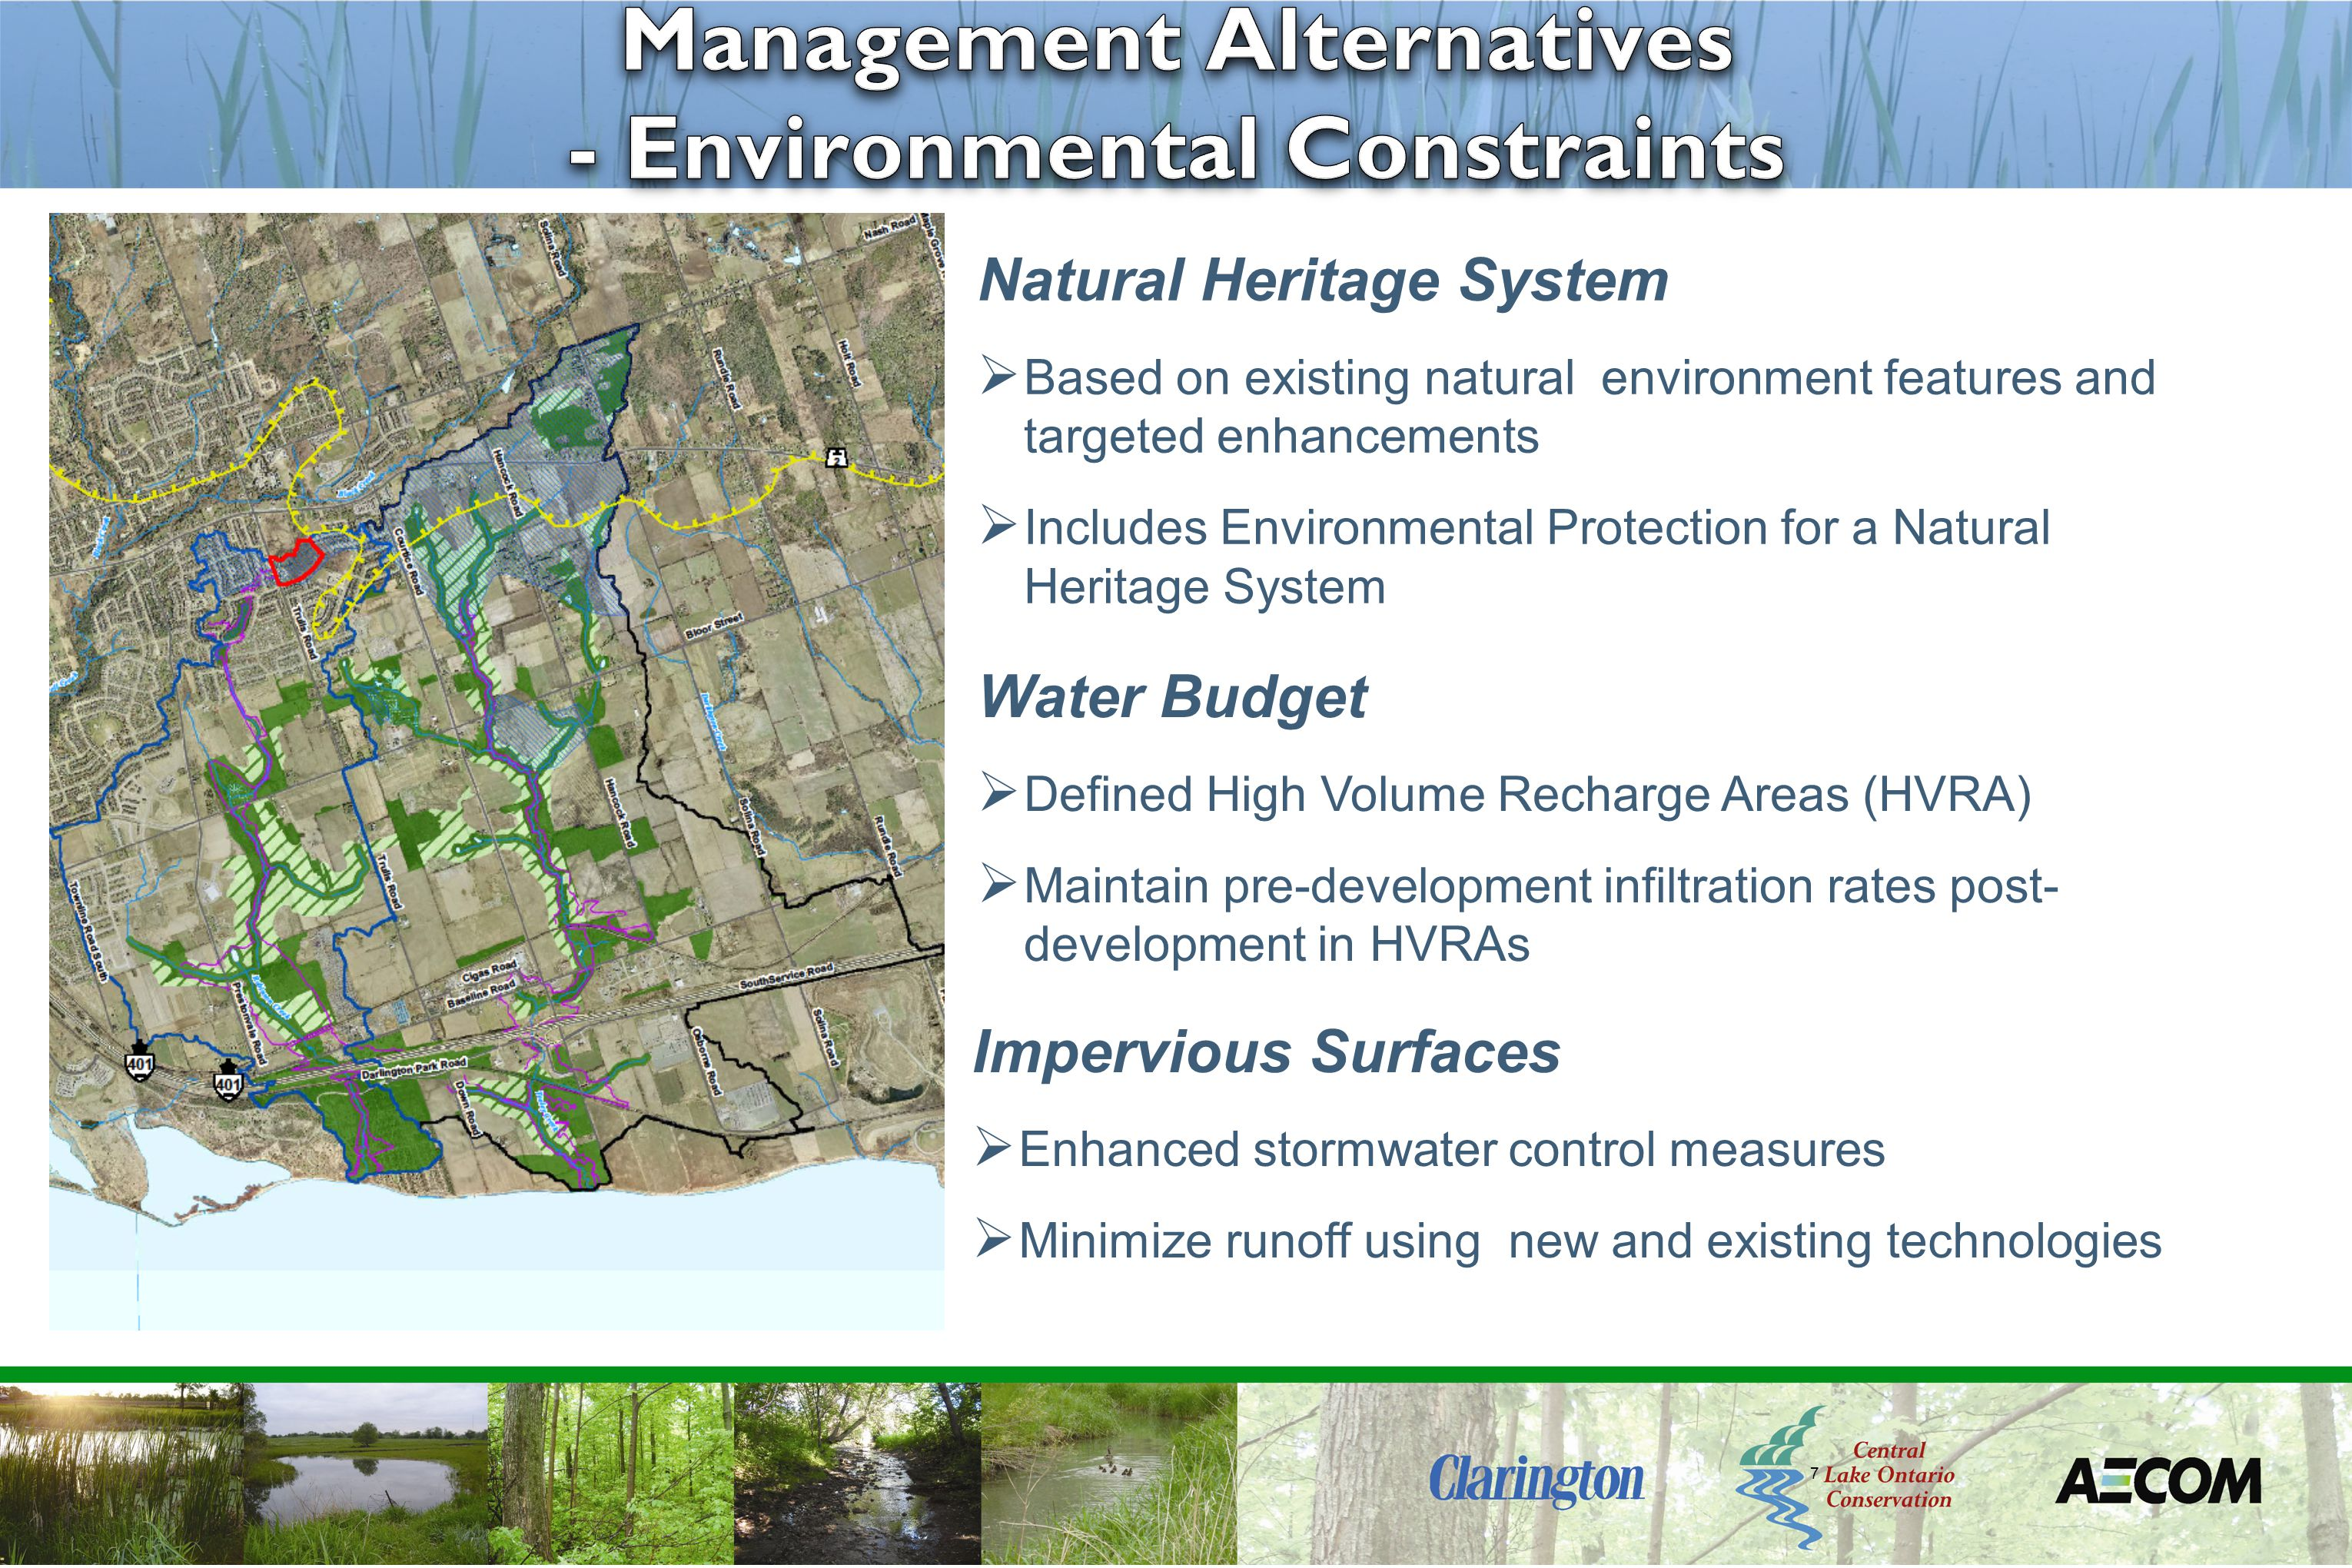 7 Natural Heritage System  Based on existing natural environment features and targeted enhancements  Includes Environmental Protection for a Natural Heritage System Water Budget  Defined High Volume Recharge Areas (HVRA)  Maintain pre-development infiltration rates post- development in HVRAs Impervious Surfaces  Enhanced stormwater control measures  Minimize runoff using new and existing technologies